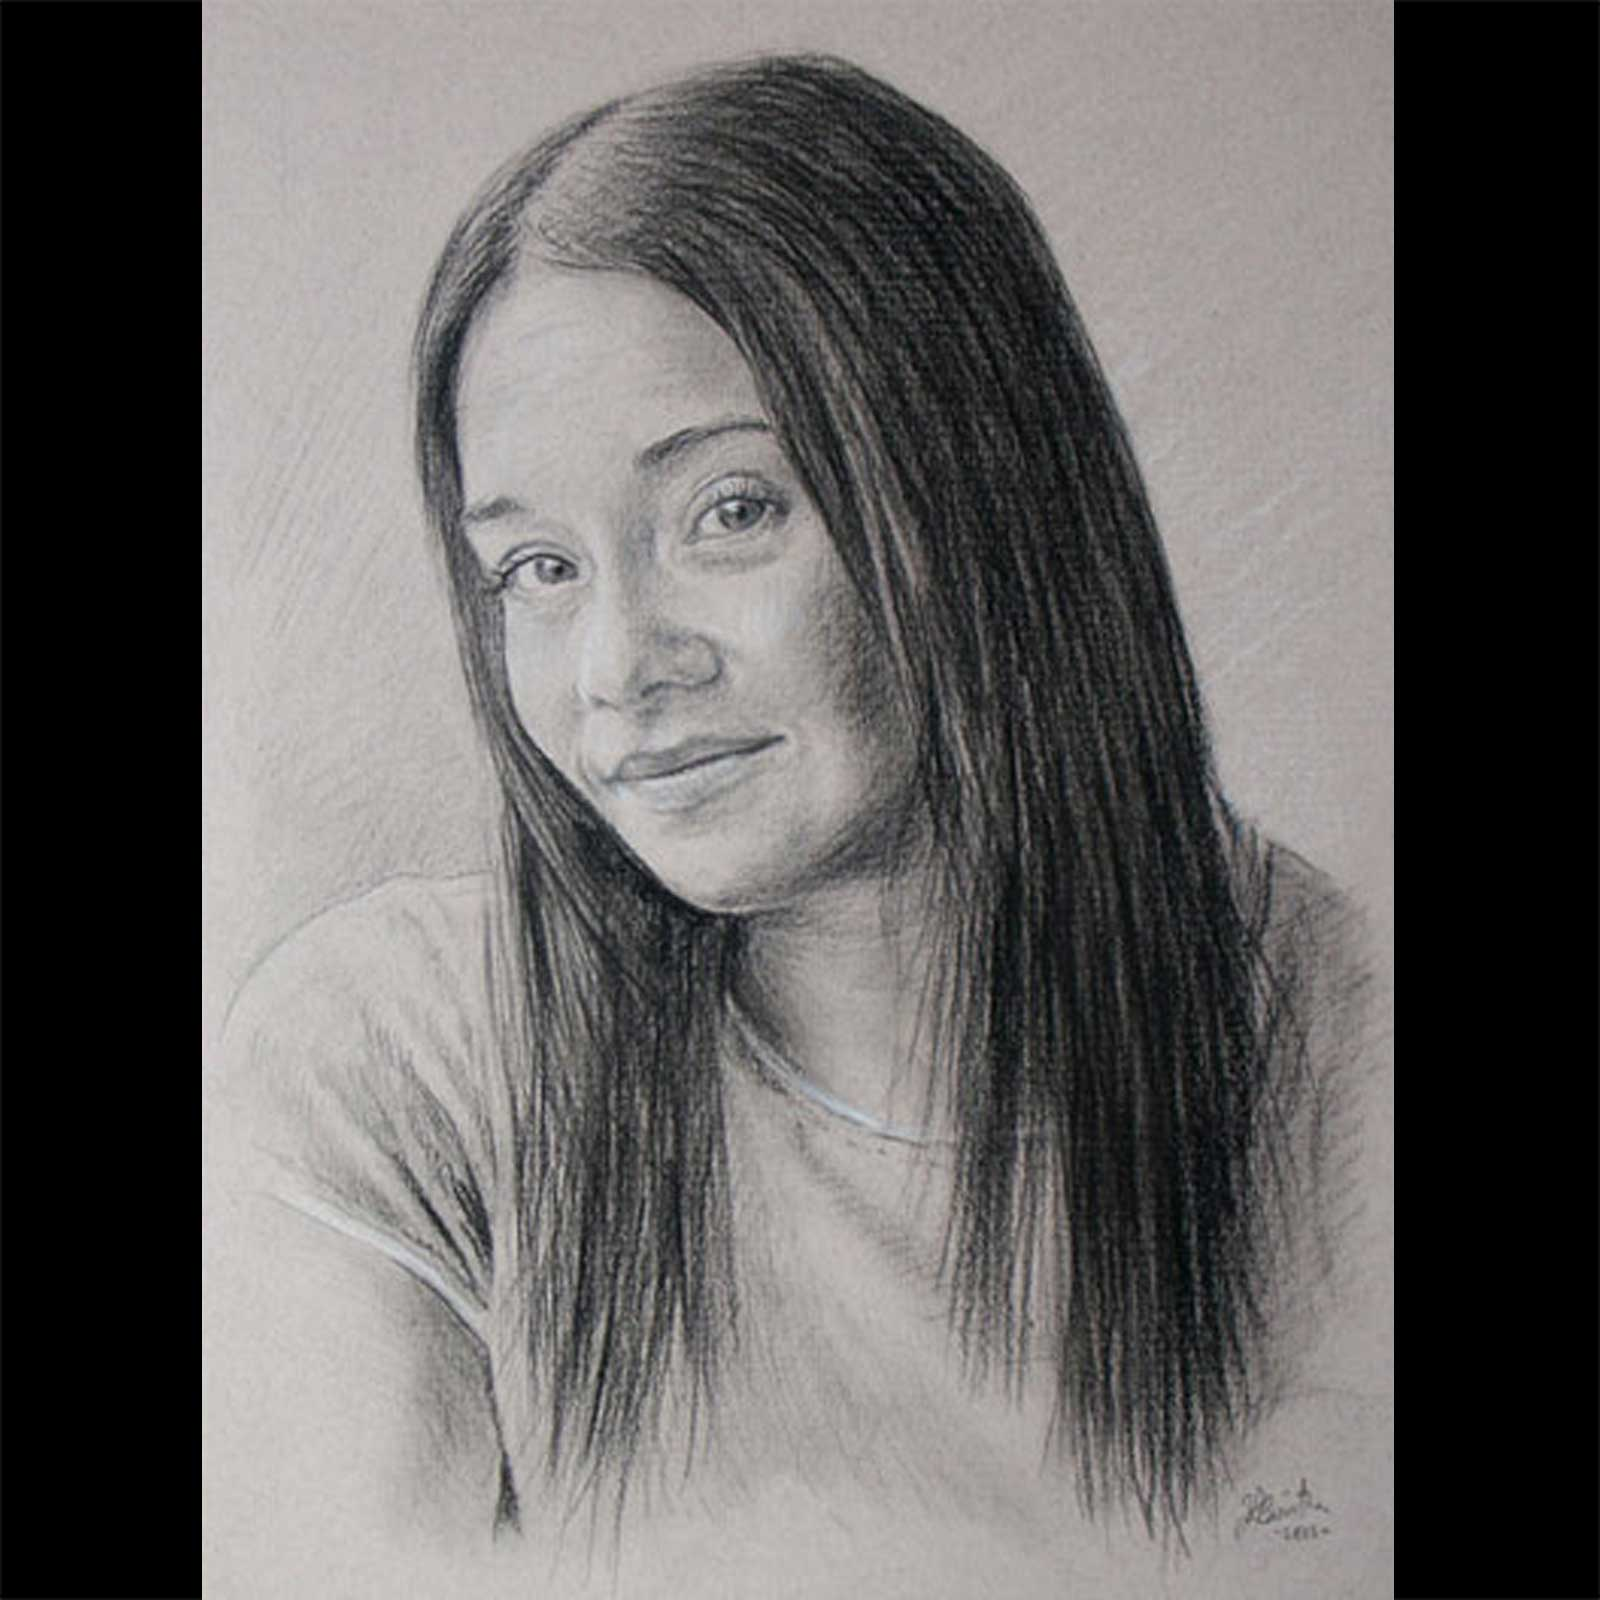 Female portrait drawing on paper